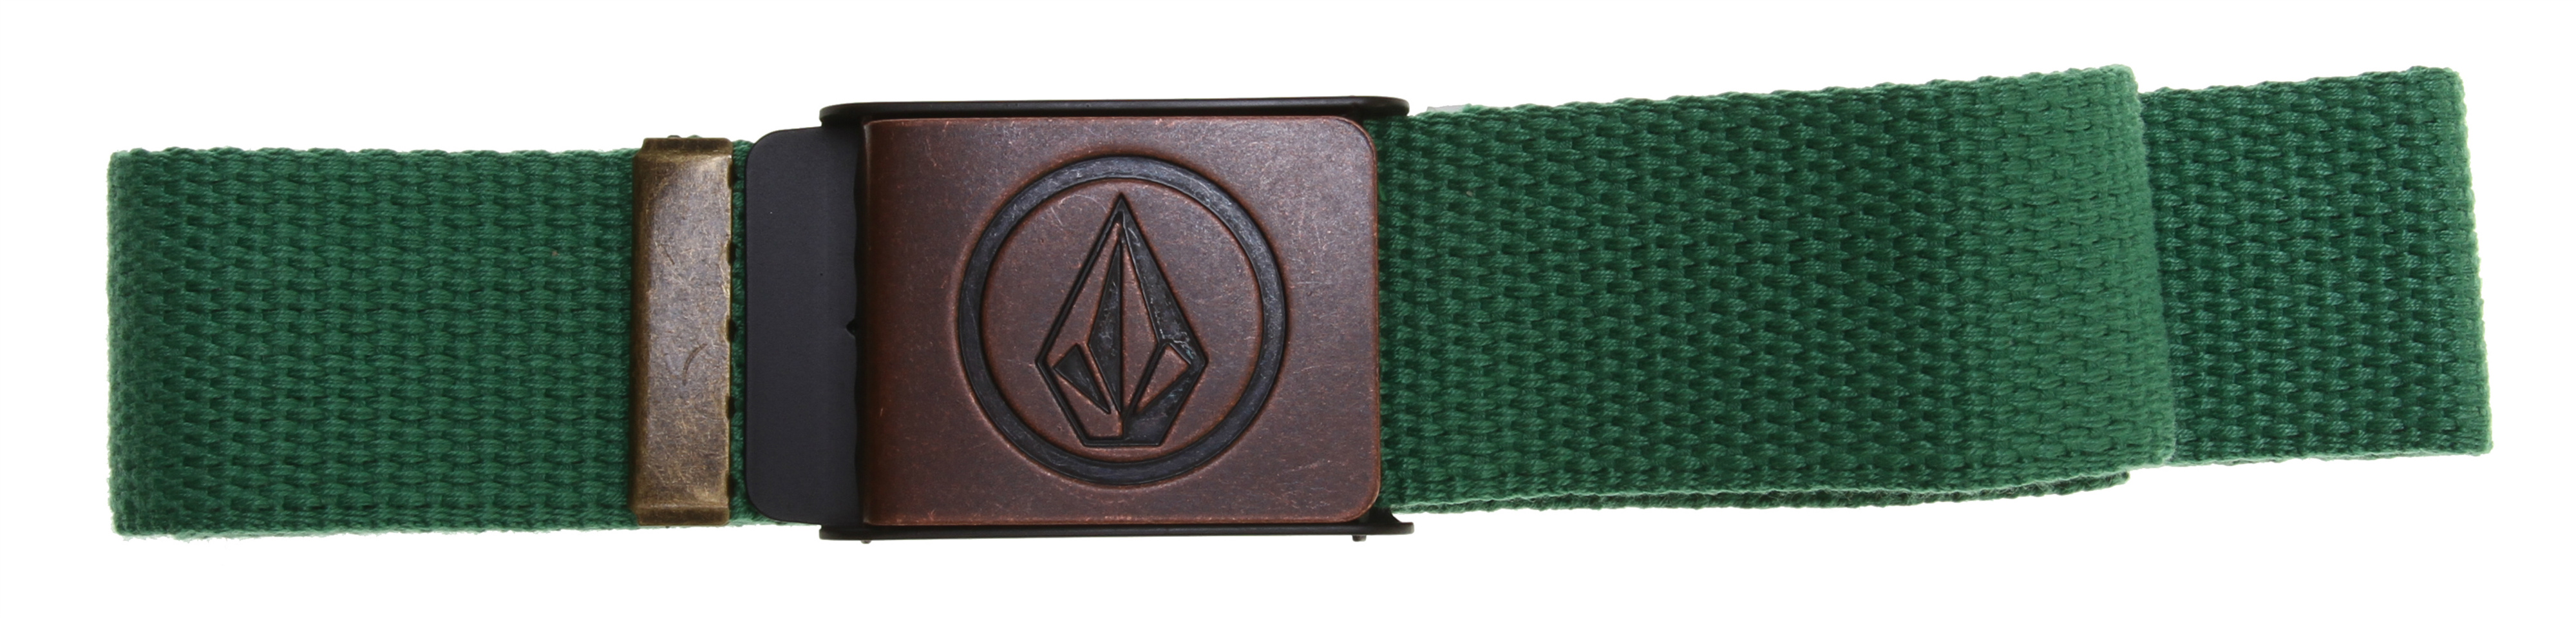 "Surf Key Features of the Volcom Circle Stone Webbing Belt: 1 1/2"" x 44"" Deboss/enamel buckle and tipping 100% Zinc Alloy (Buckle/Tipping); 100% Polyester (Webbing) Core Collection - $13.00"